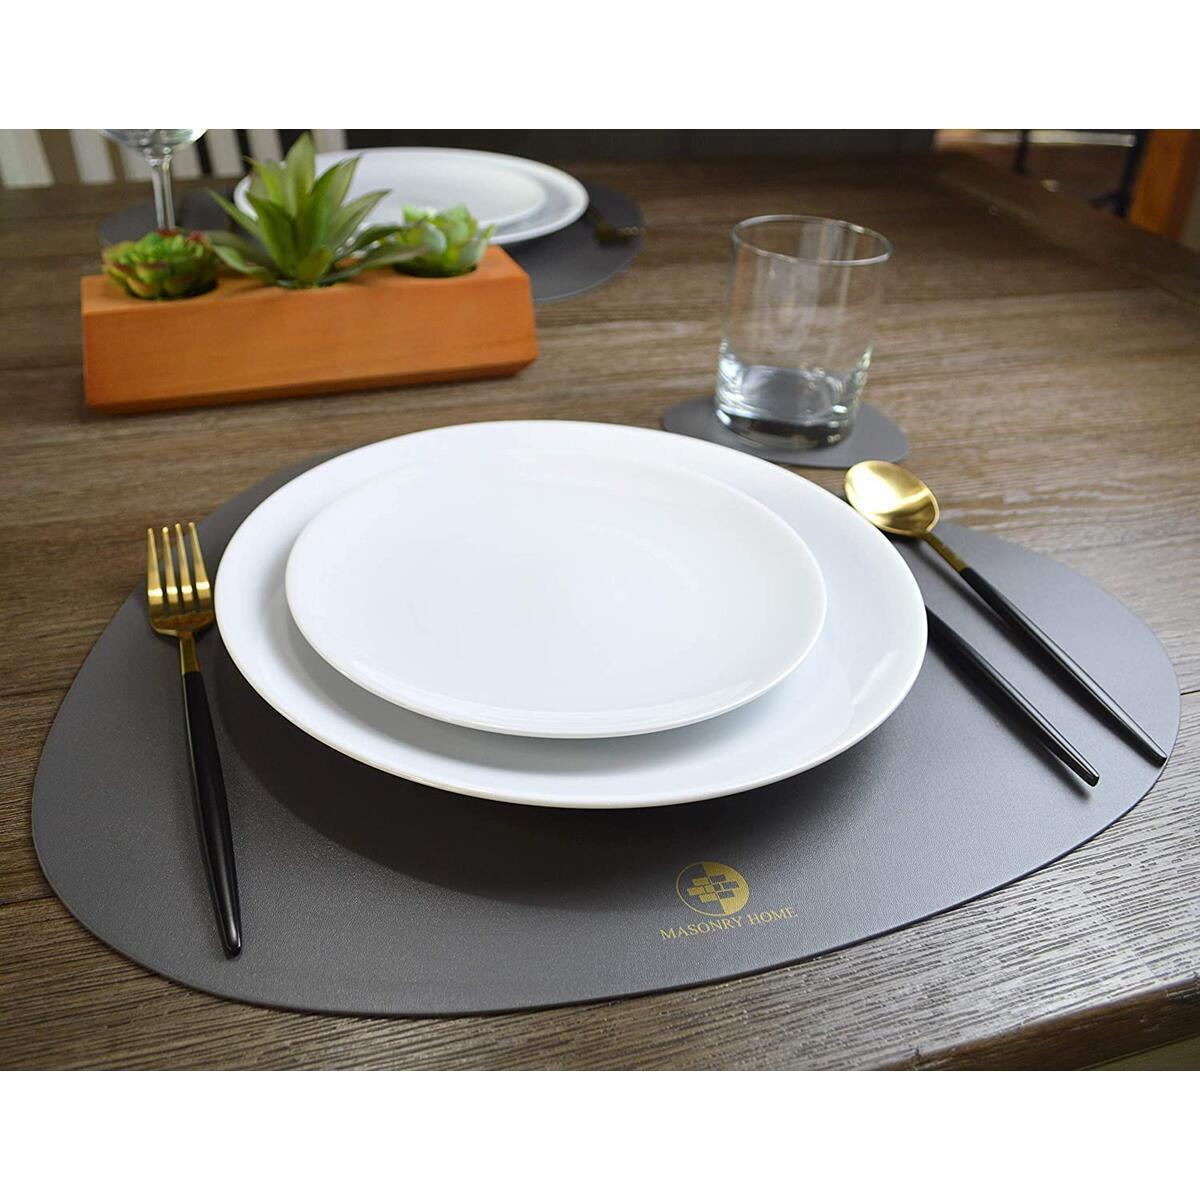 Masonry Home Synthetic Gray Leather Placemats and Coasters for Dining table (Set of 6) - 6 Place Mats and 6 Coasters for Drinks - Easy Clean, Waterproof, Washable, Durable - Table Mats for Kitchen